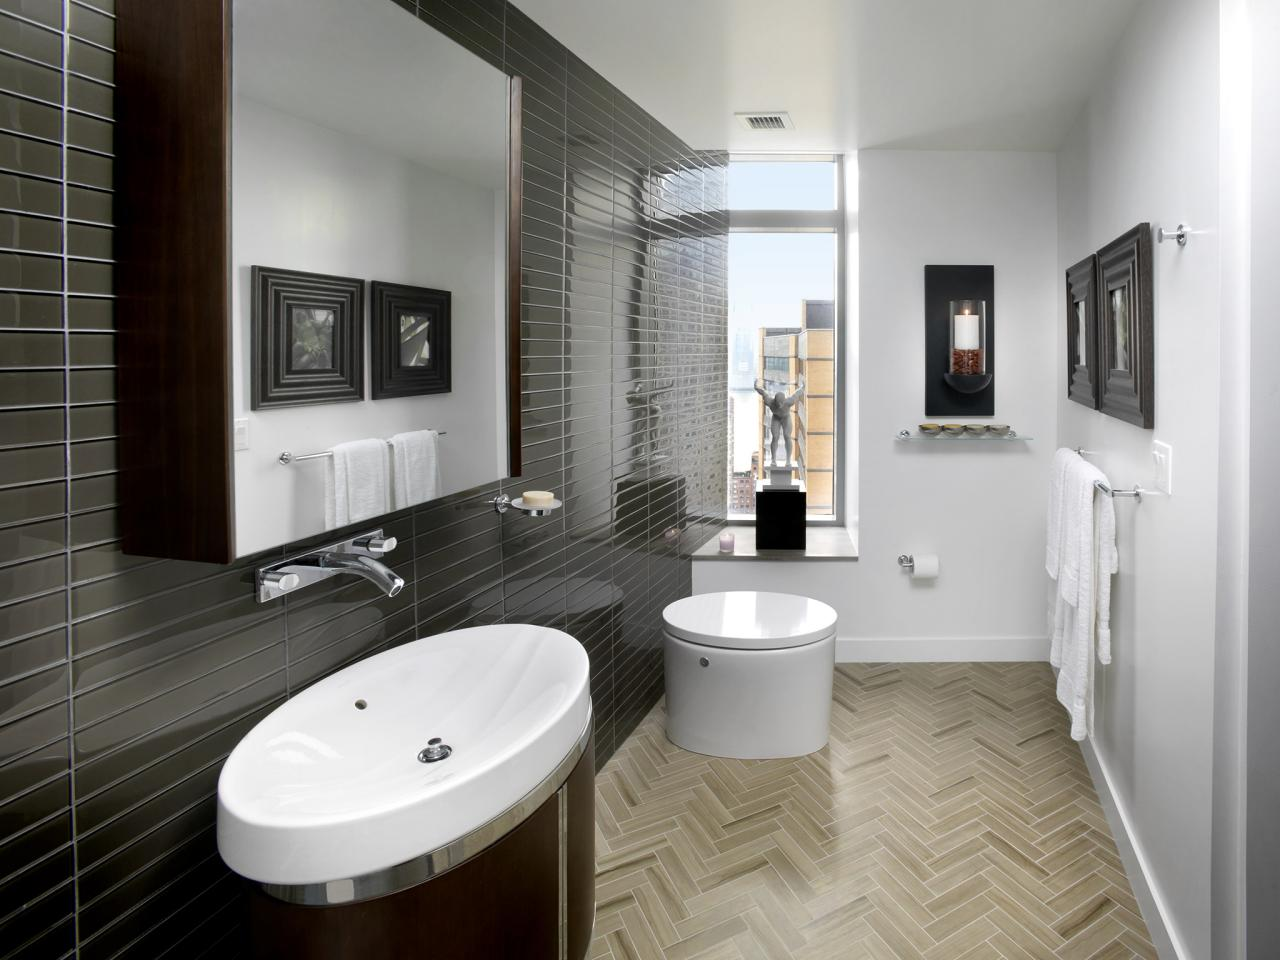 Bath Room Design Small Bathtub Ideas And Options Pictures & Tips From Hgtv  Hgtv